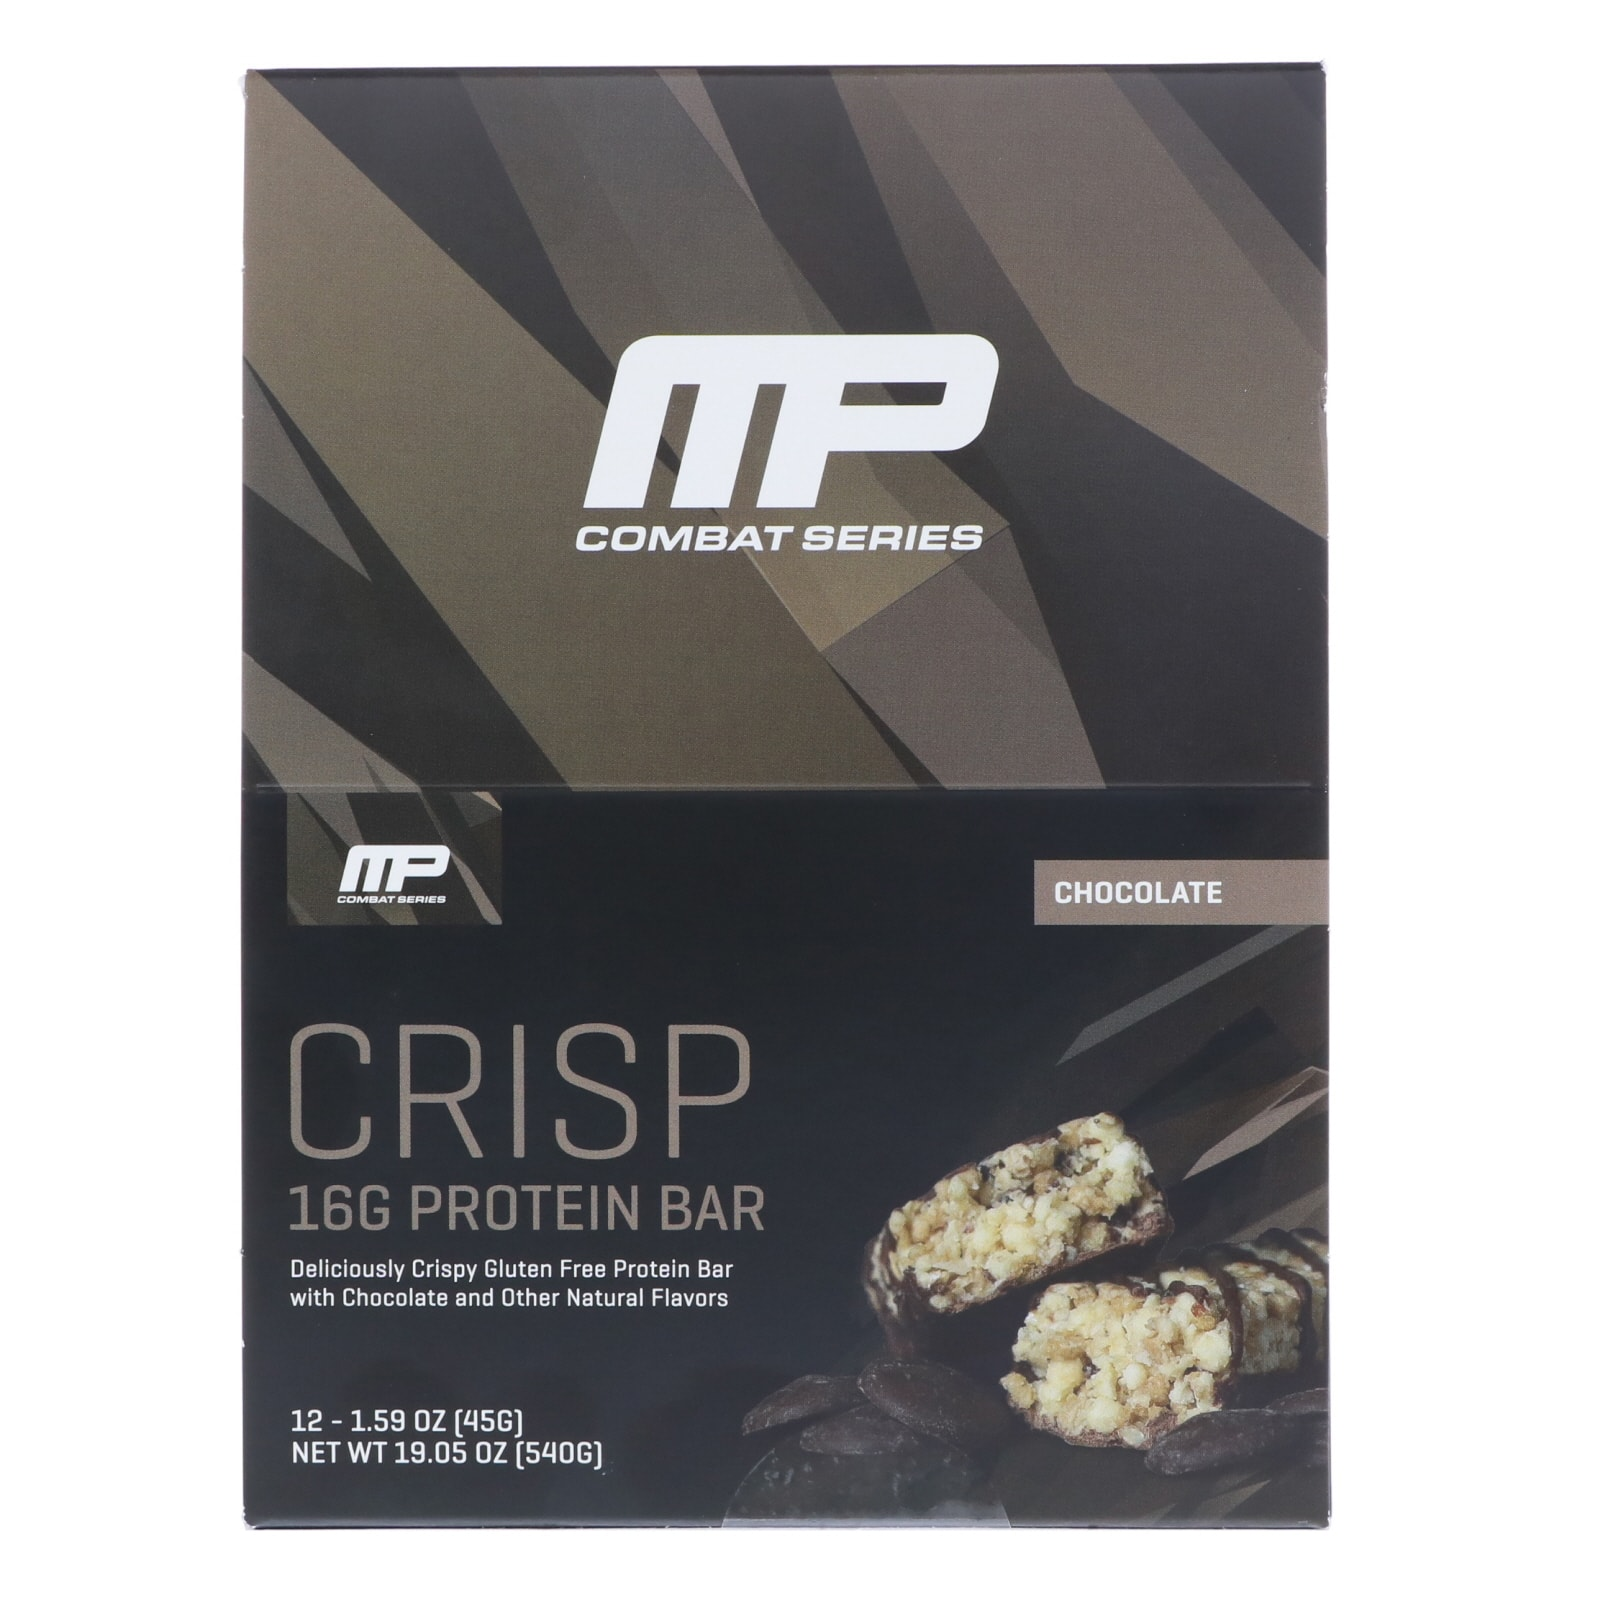 MusclePharm Combat Crunch Protein Bar, Multi-Layered Baked Bars, 20g Protein, 12 bars: Chocolate Cake $13.10, Double Stuffed Cookie Dough $12.81 w/ S&S